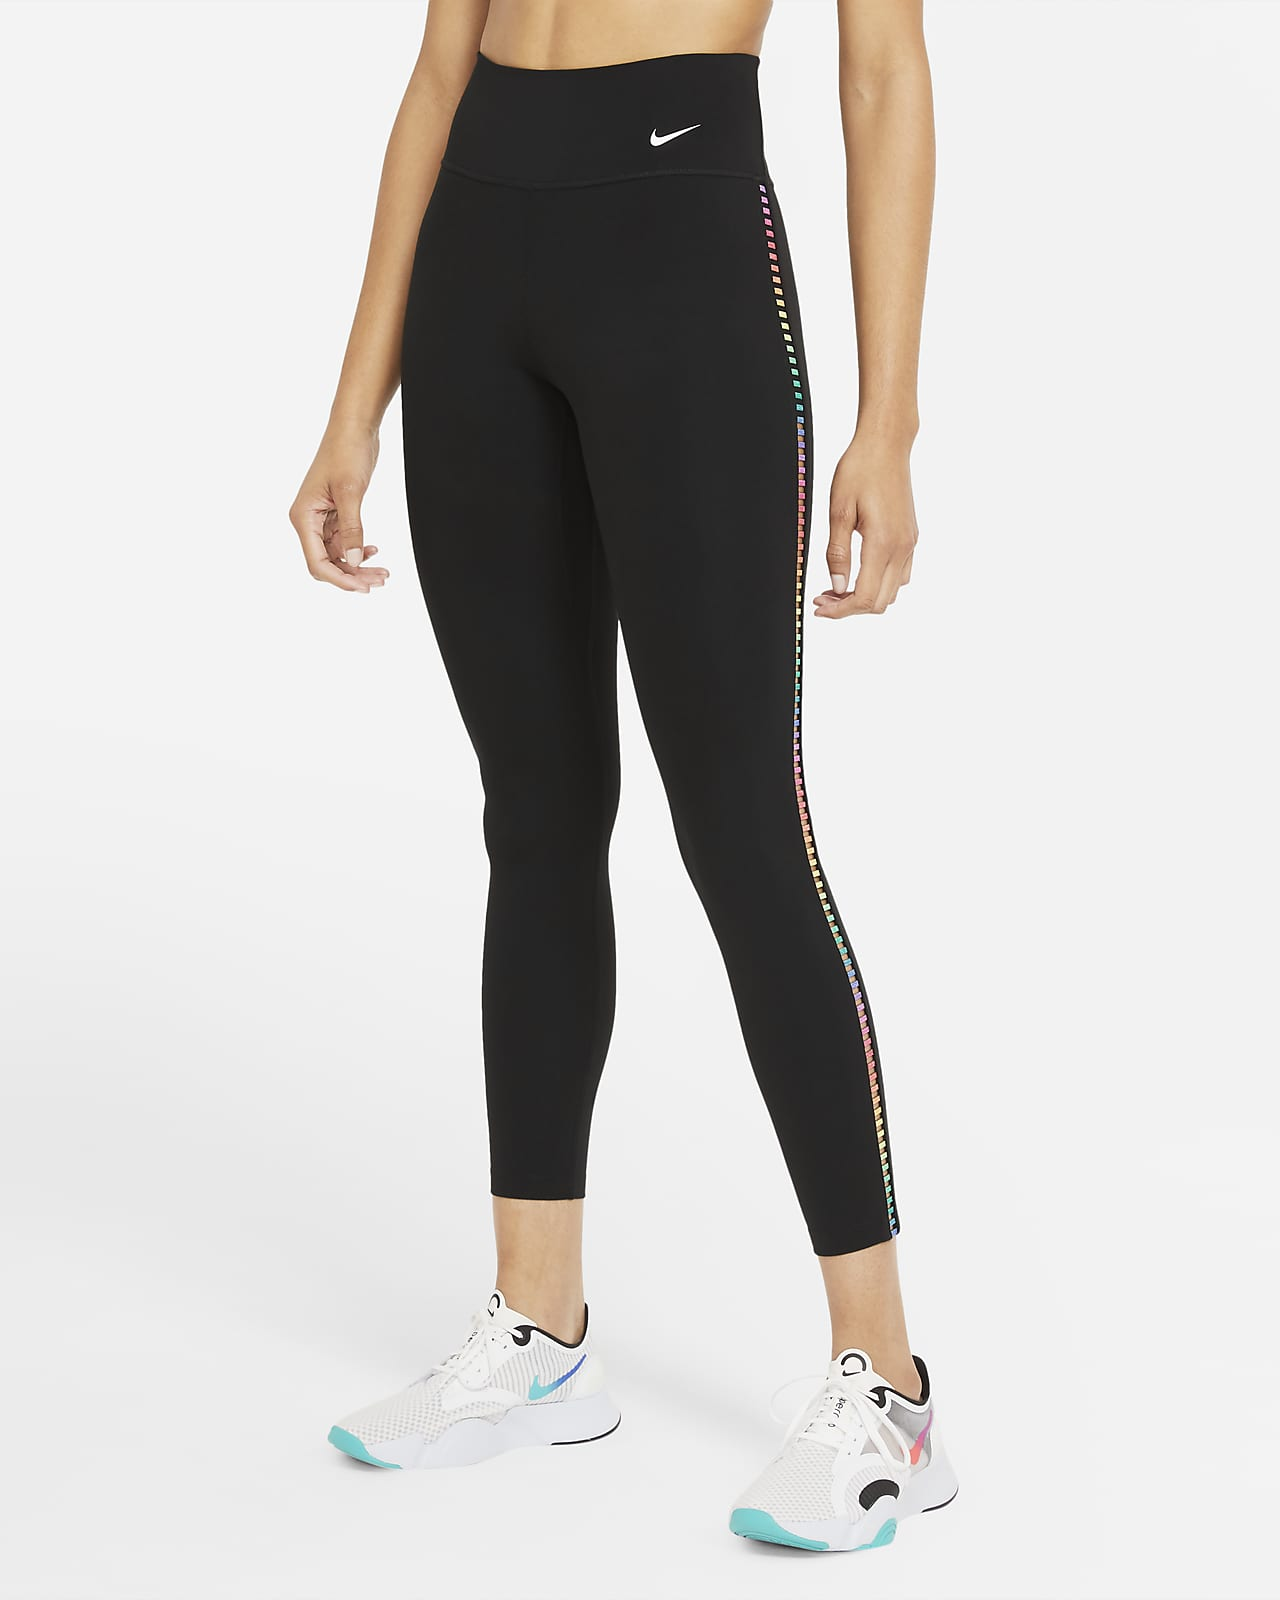 Nike One Rainbow Ladder Women's 7/8 Leggings